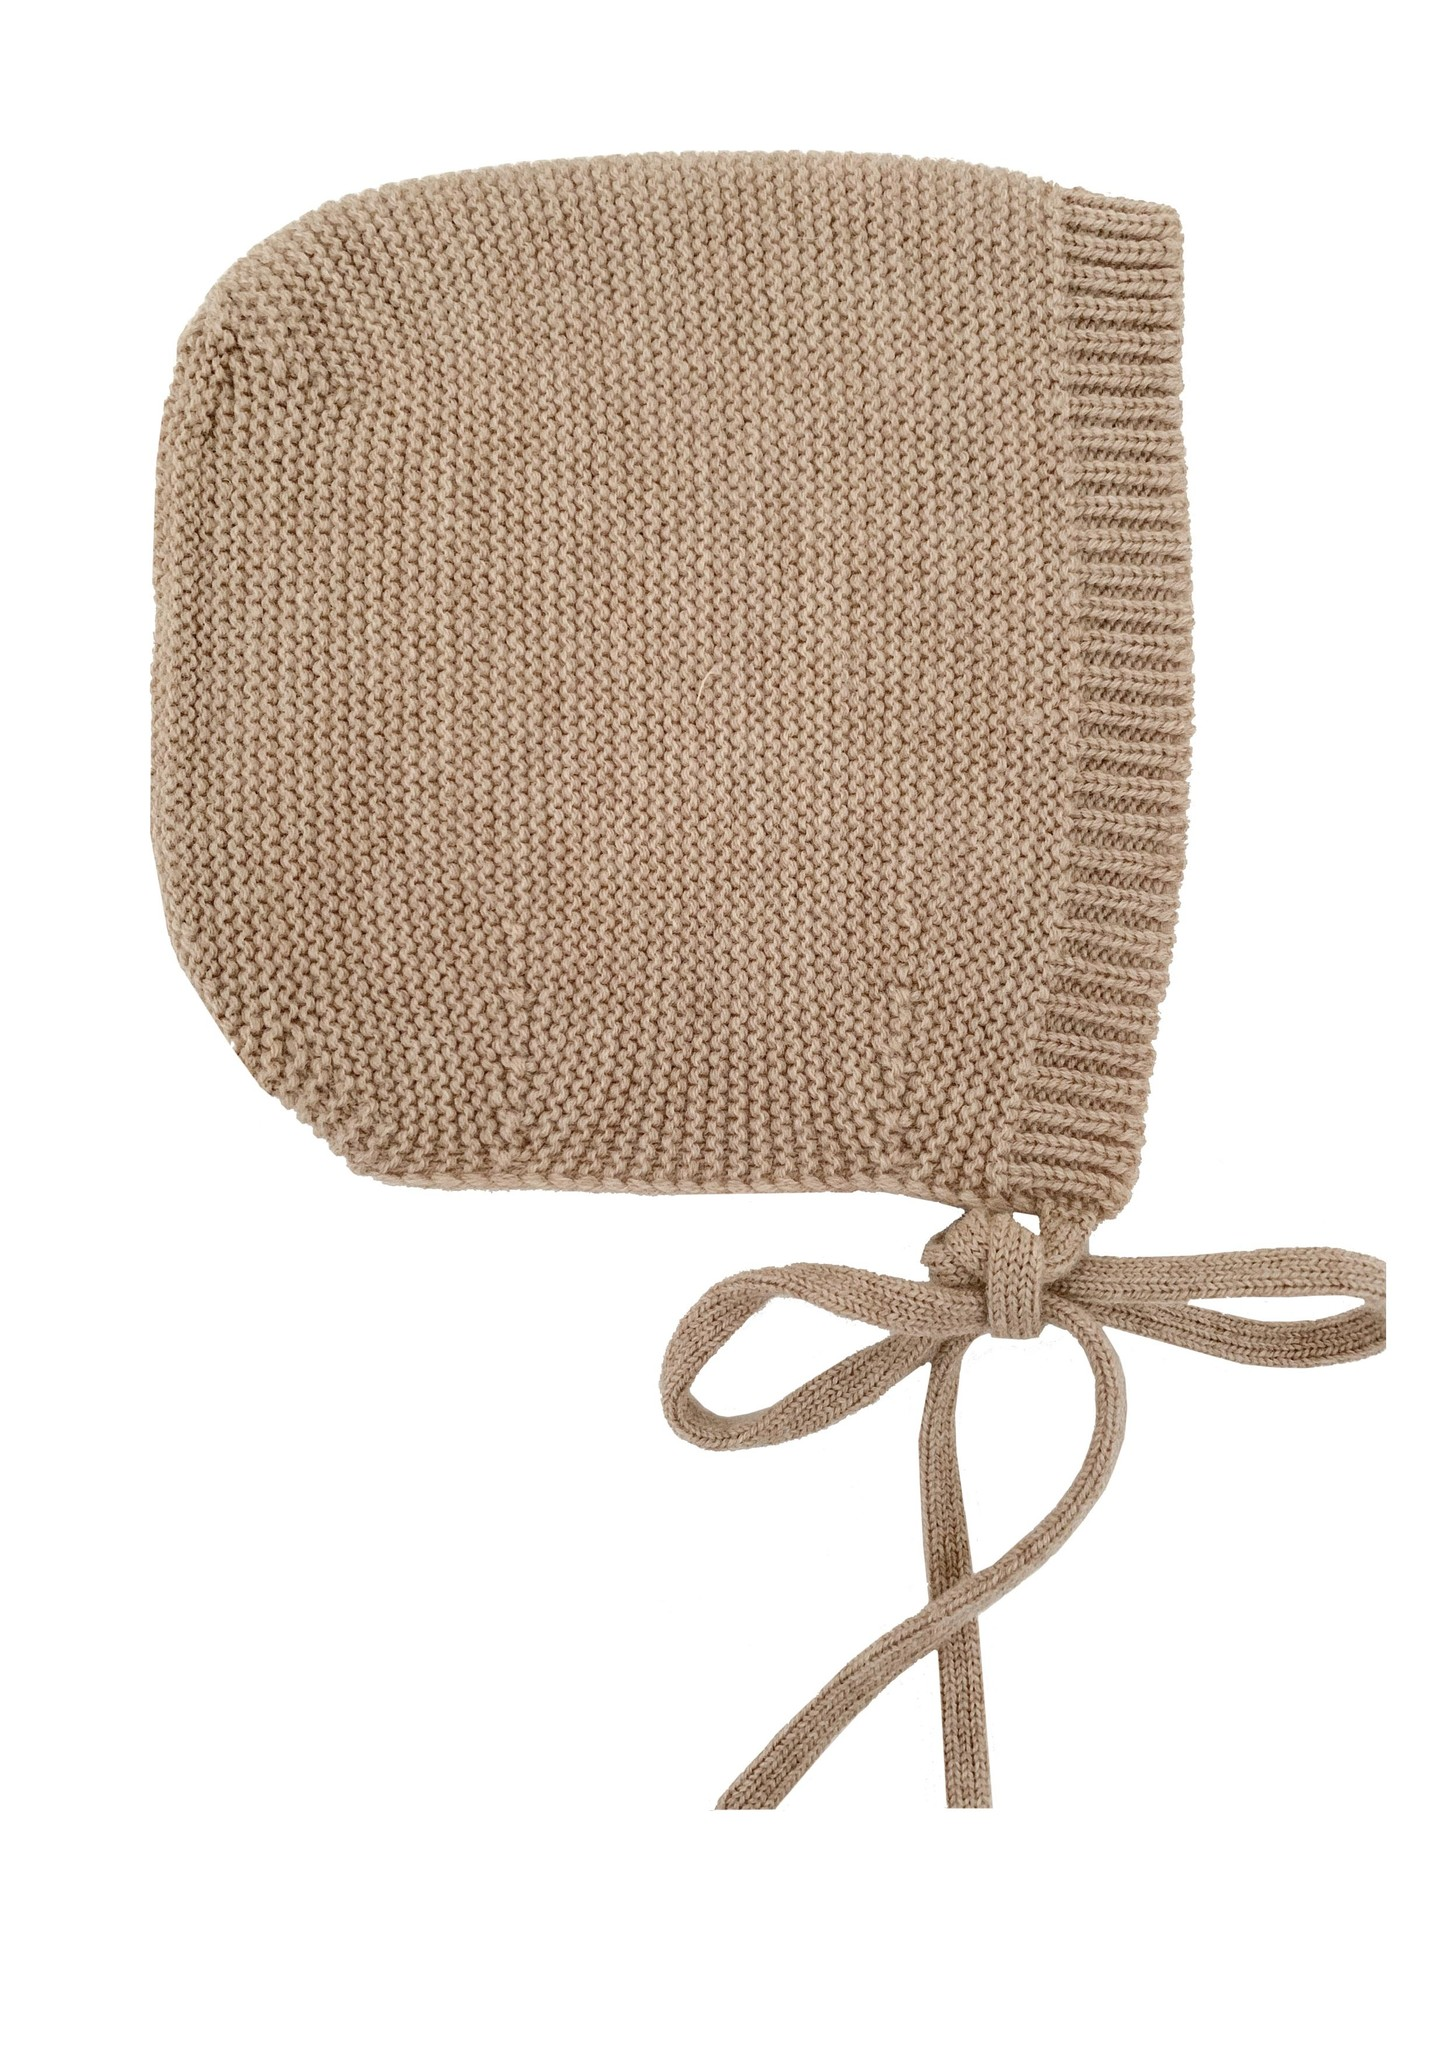 HVID woolen baby bonnet DOLLY - 100% merino wool - sand - up to 3 months